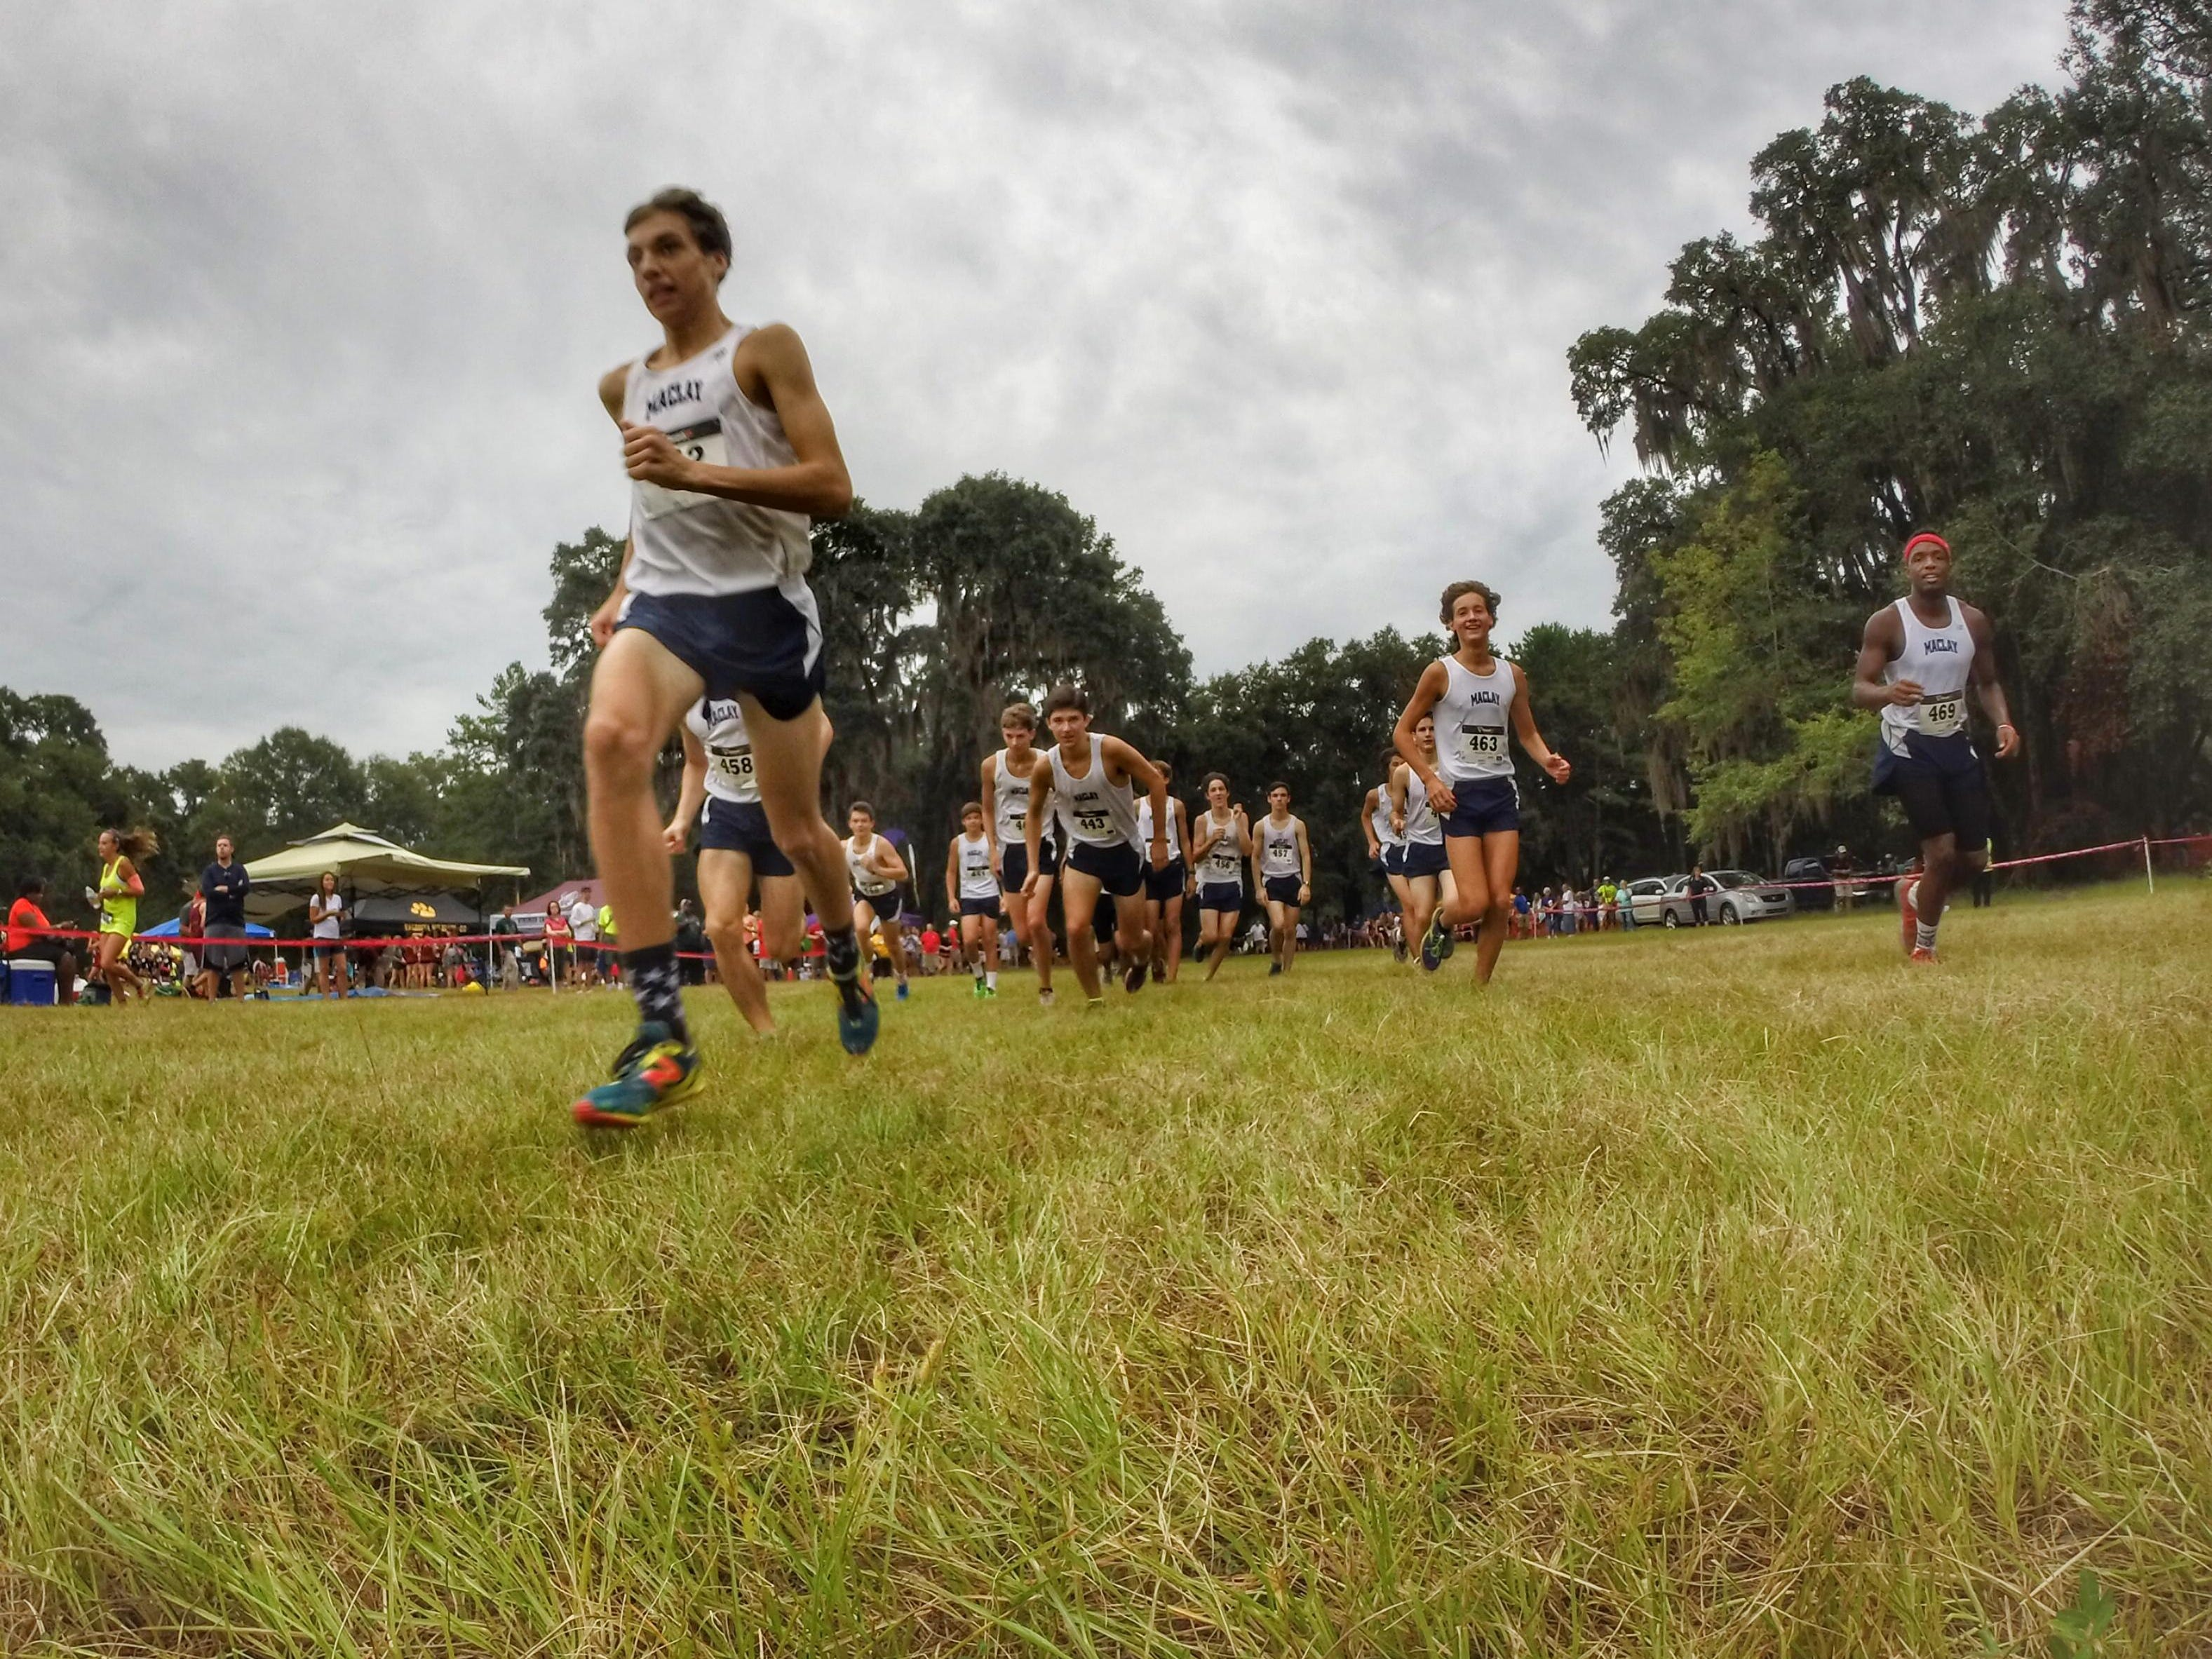 Maclay's George Gwynn warms up with the rest of his Marauders team behind him at the season-opening Cougar XC Challenge at Elinor Klapp-Phipps Park. Maclay is a favorite to win a 1A state title this season.